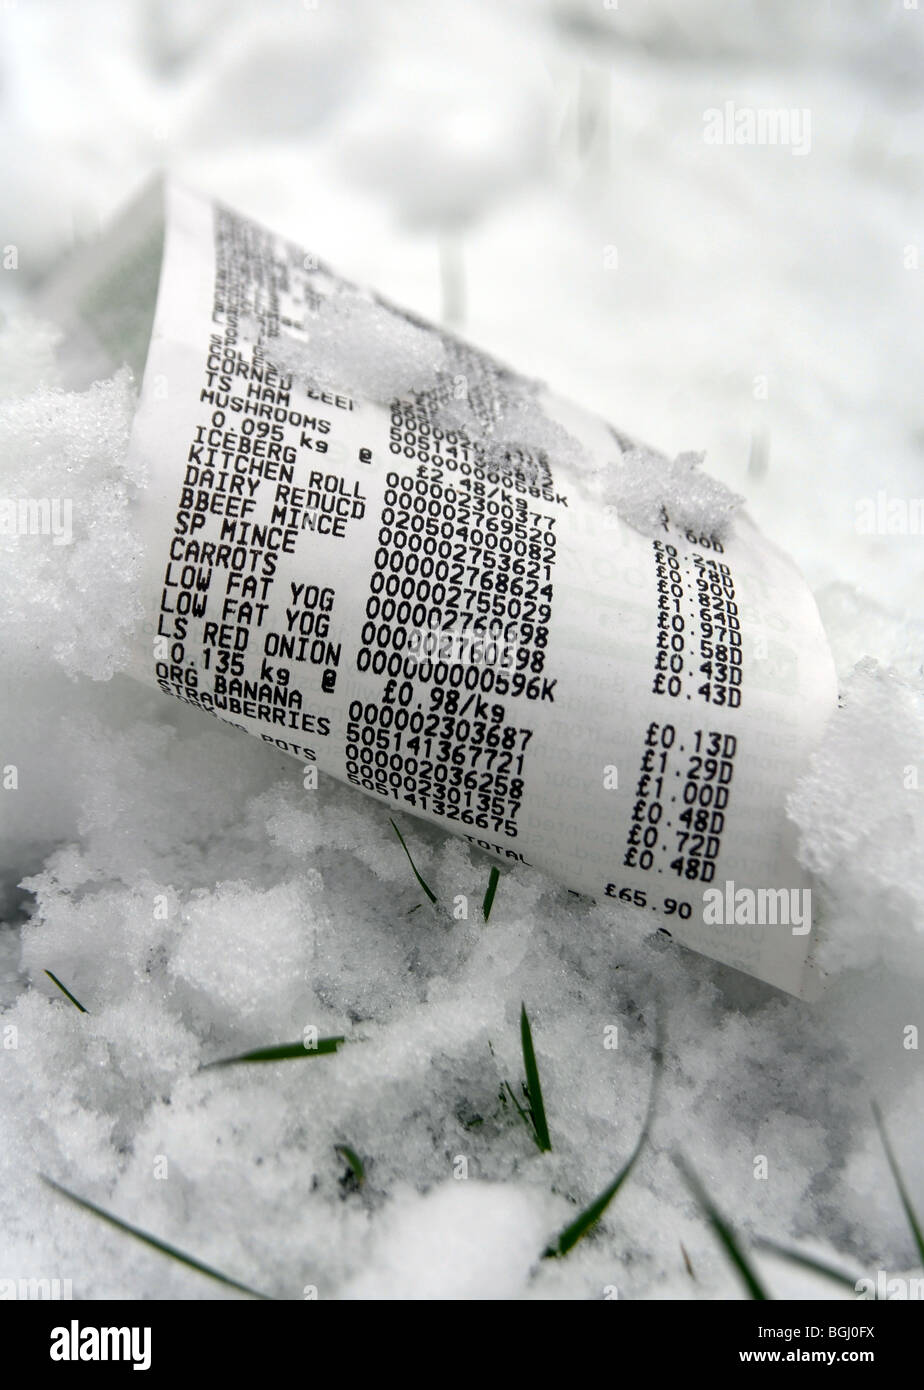 BRITISH SUPERMARKET FOOD BILL / RECEIPT IN SNOWY CONDITIONS RE RISING FOOD COSTS IN BAD WEATHER WINTER,UK - Stock Image